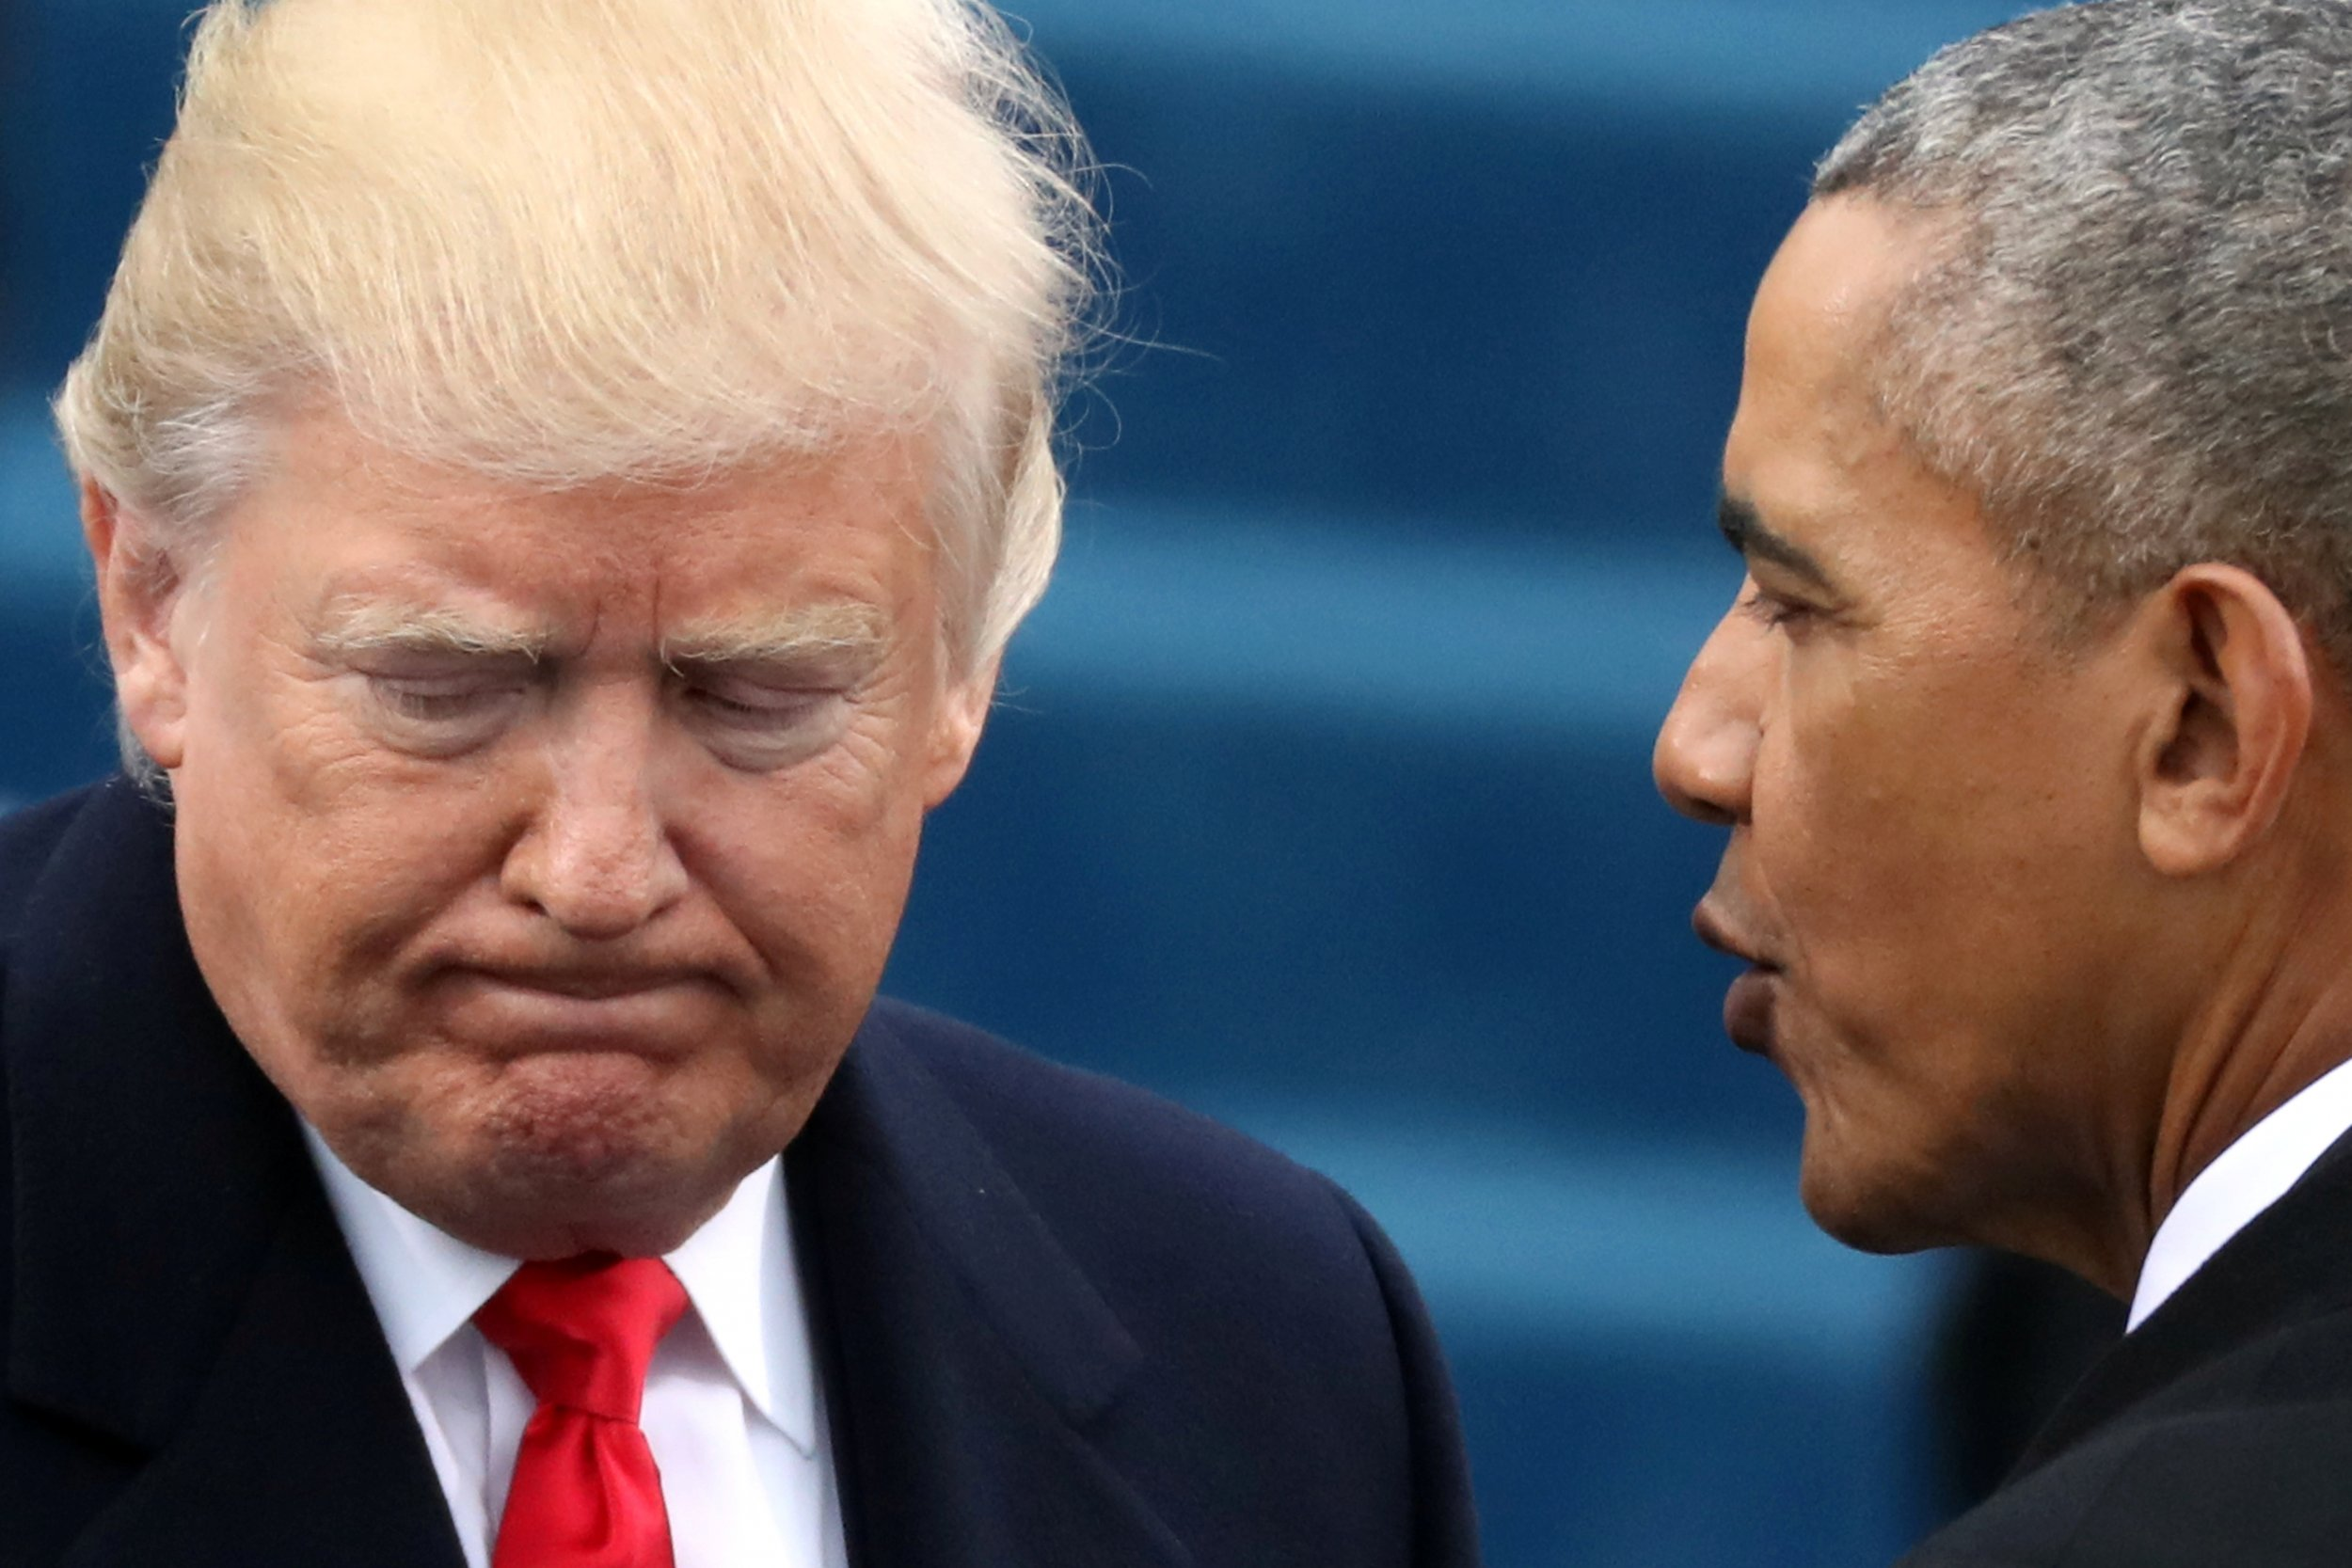 Obama approval rating soars post-Trump election pictures